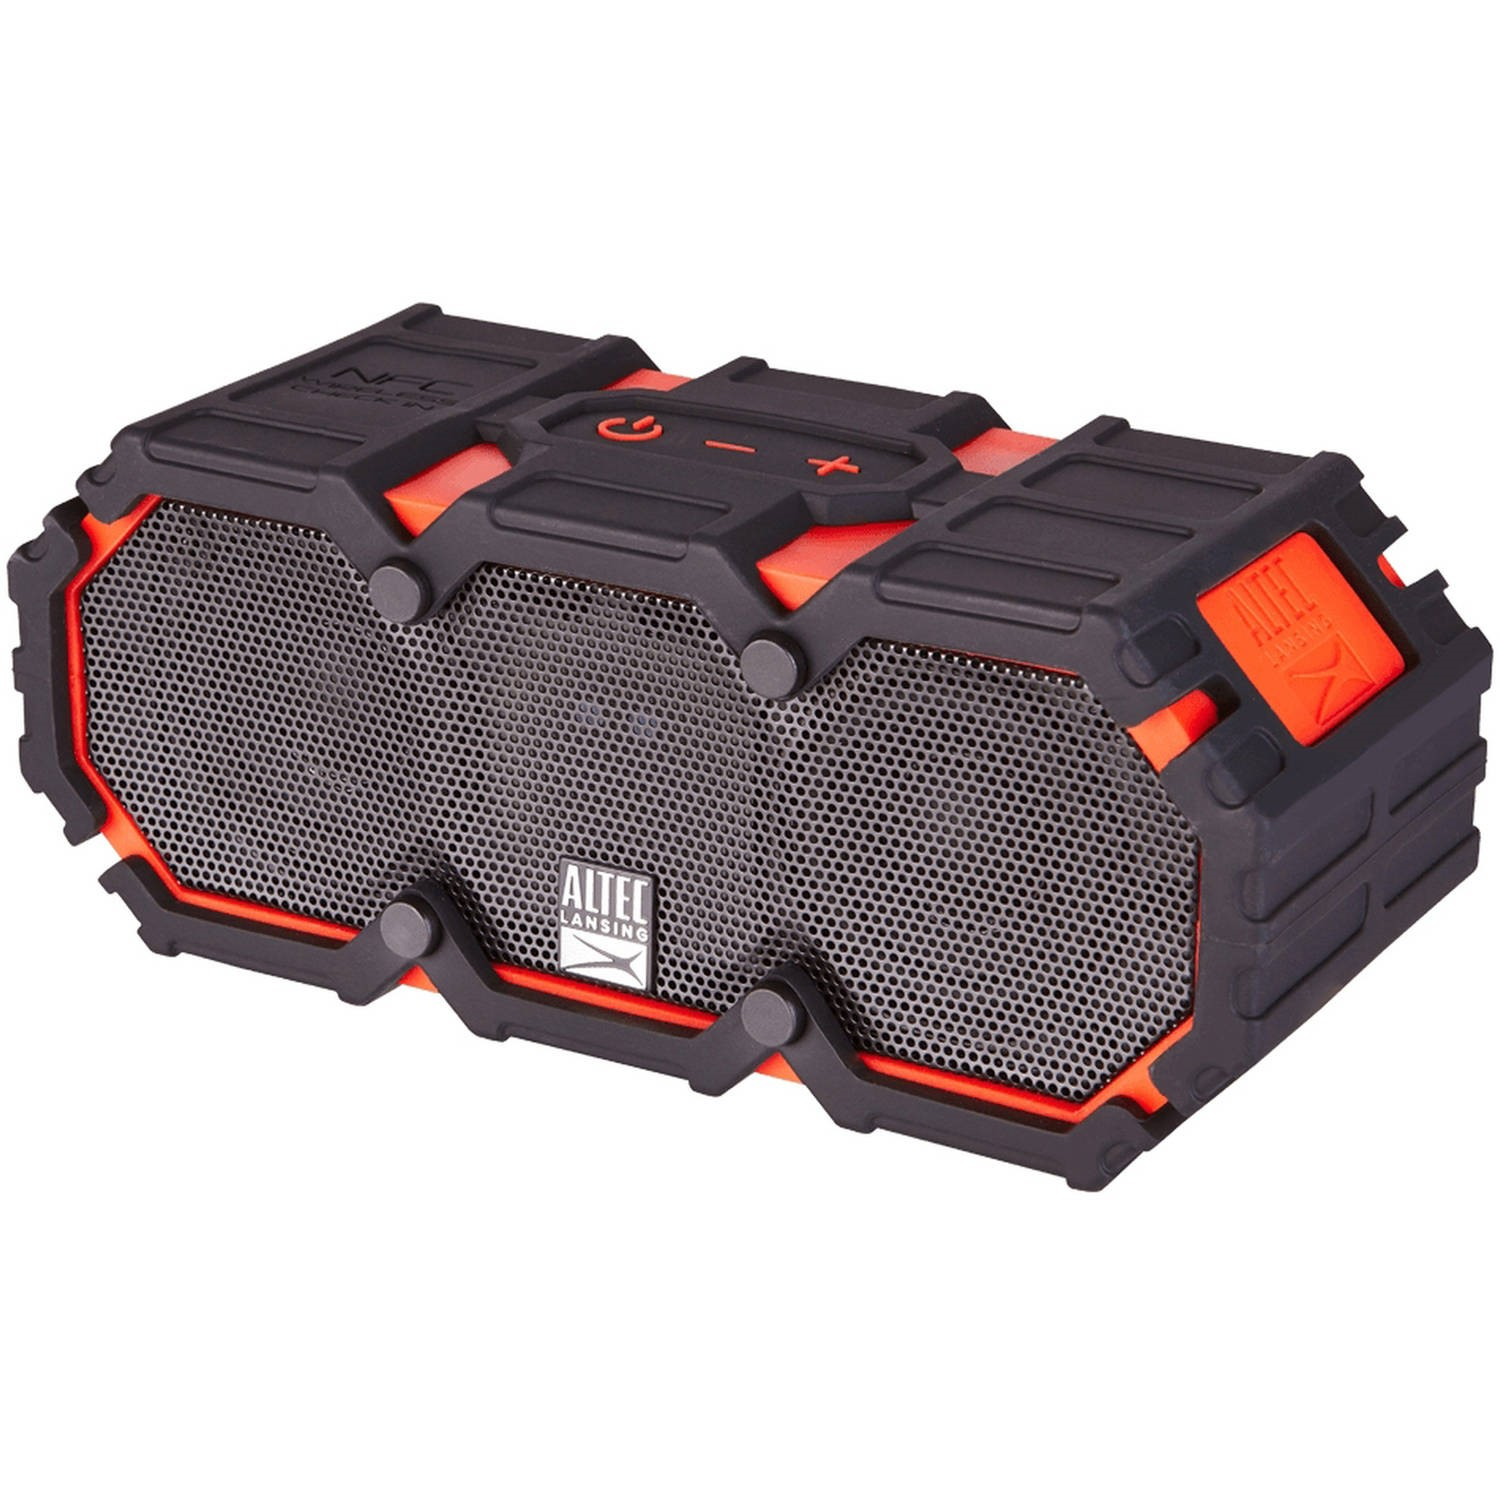 Altec Lansing iMW577 Lifejacket 2 Bluetooth Speaker, Red by Altec Lancing